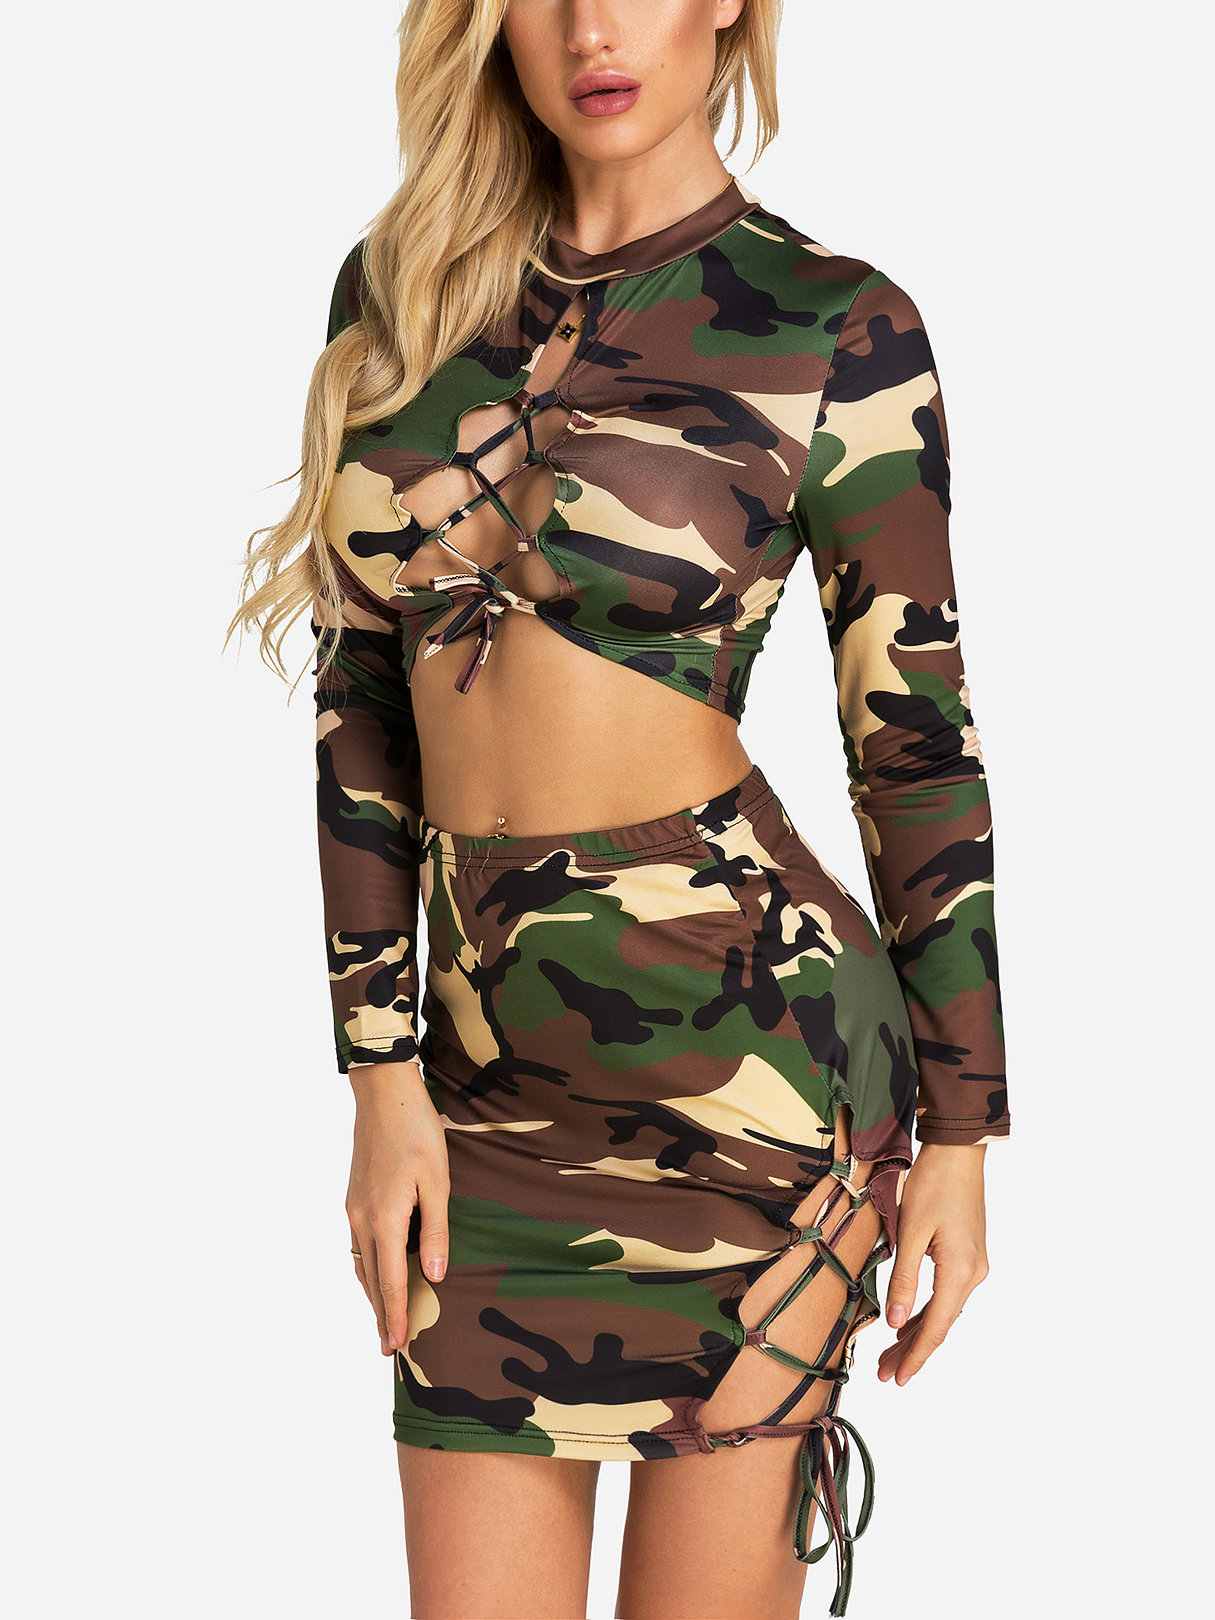 Lace-up Design Camouflage Long Sleeves Top And Lace-up Camouflage Skirt фонарь maglite mini camouflage m2a026e